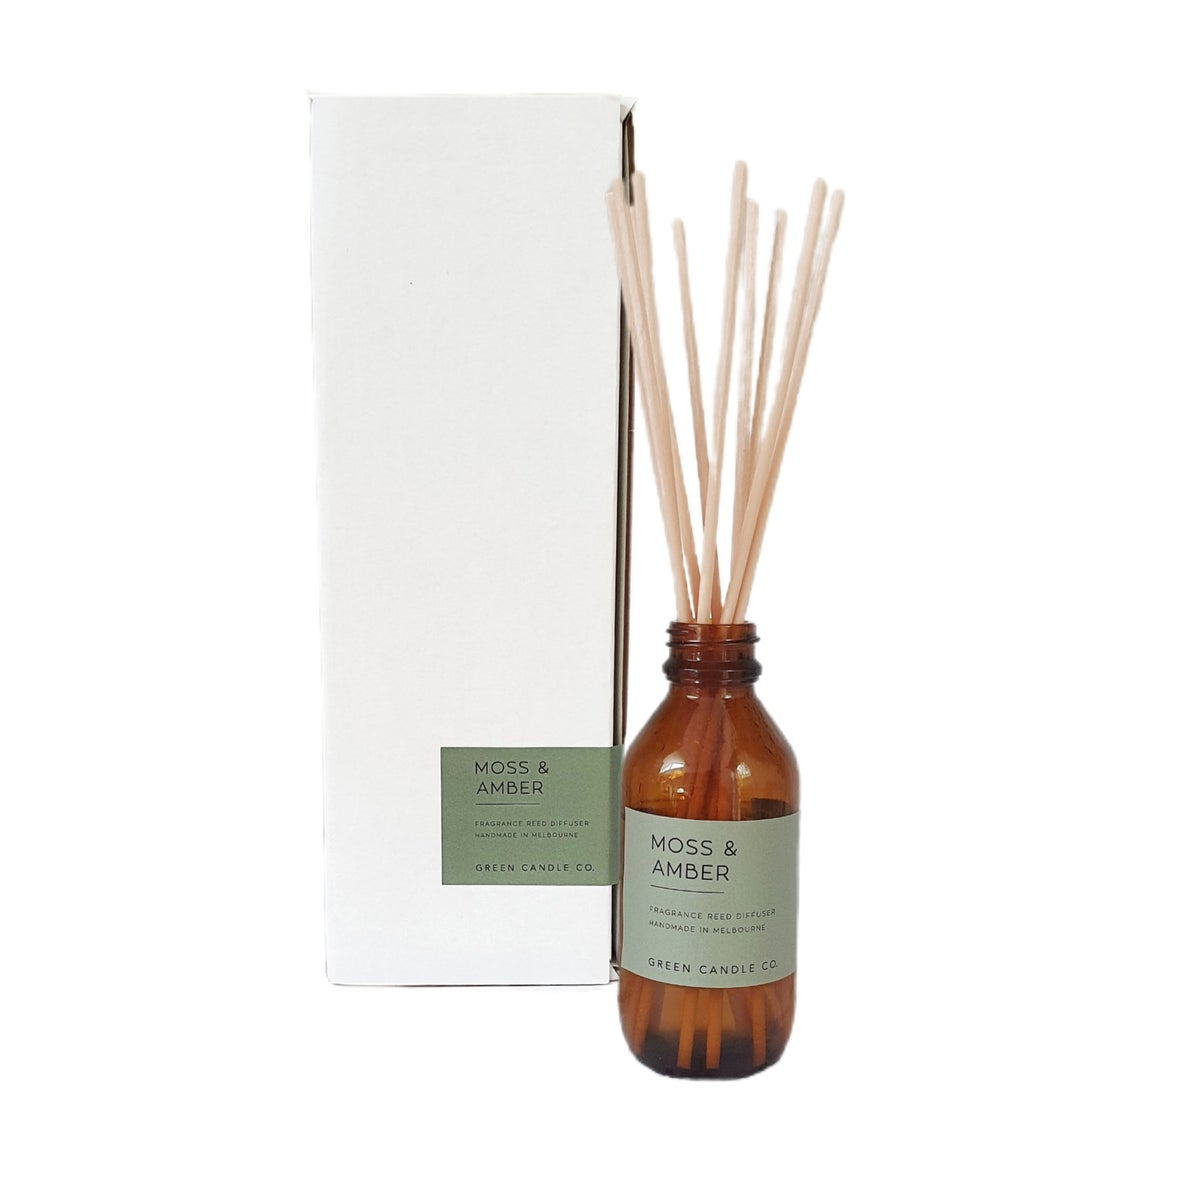 Image of MOSS & AMBER / Reed Diffusers